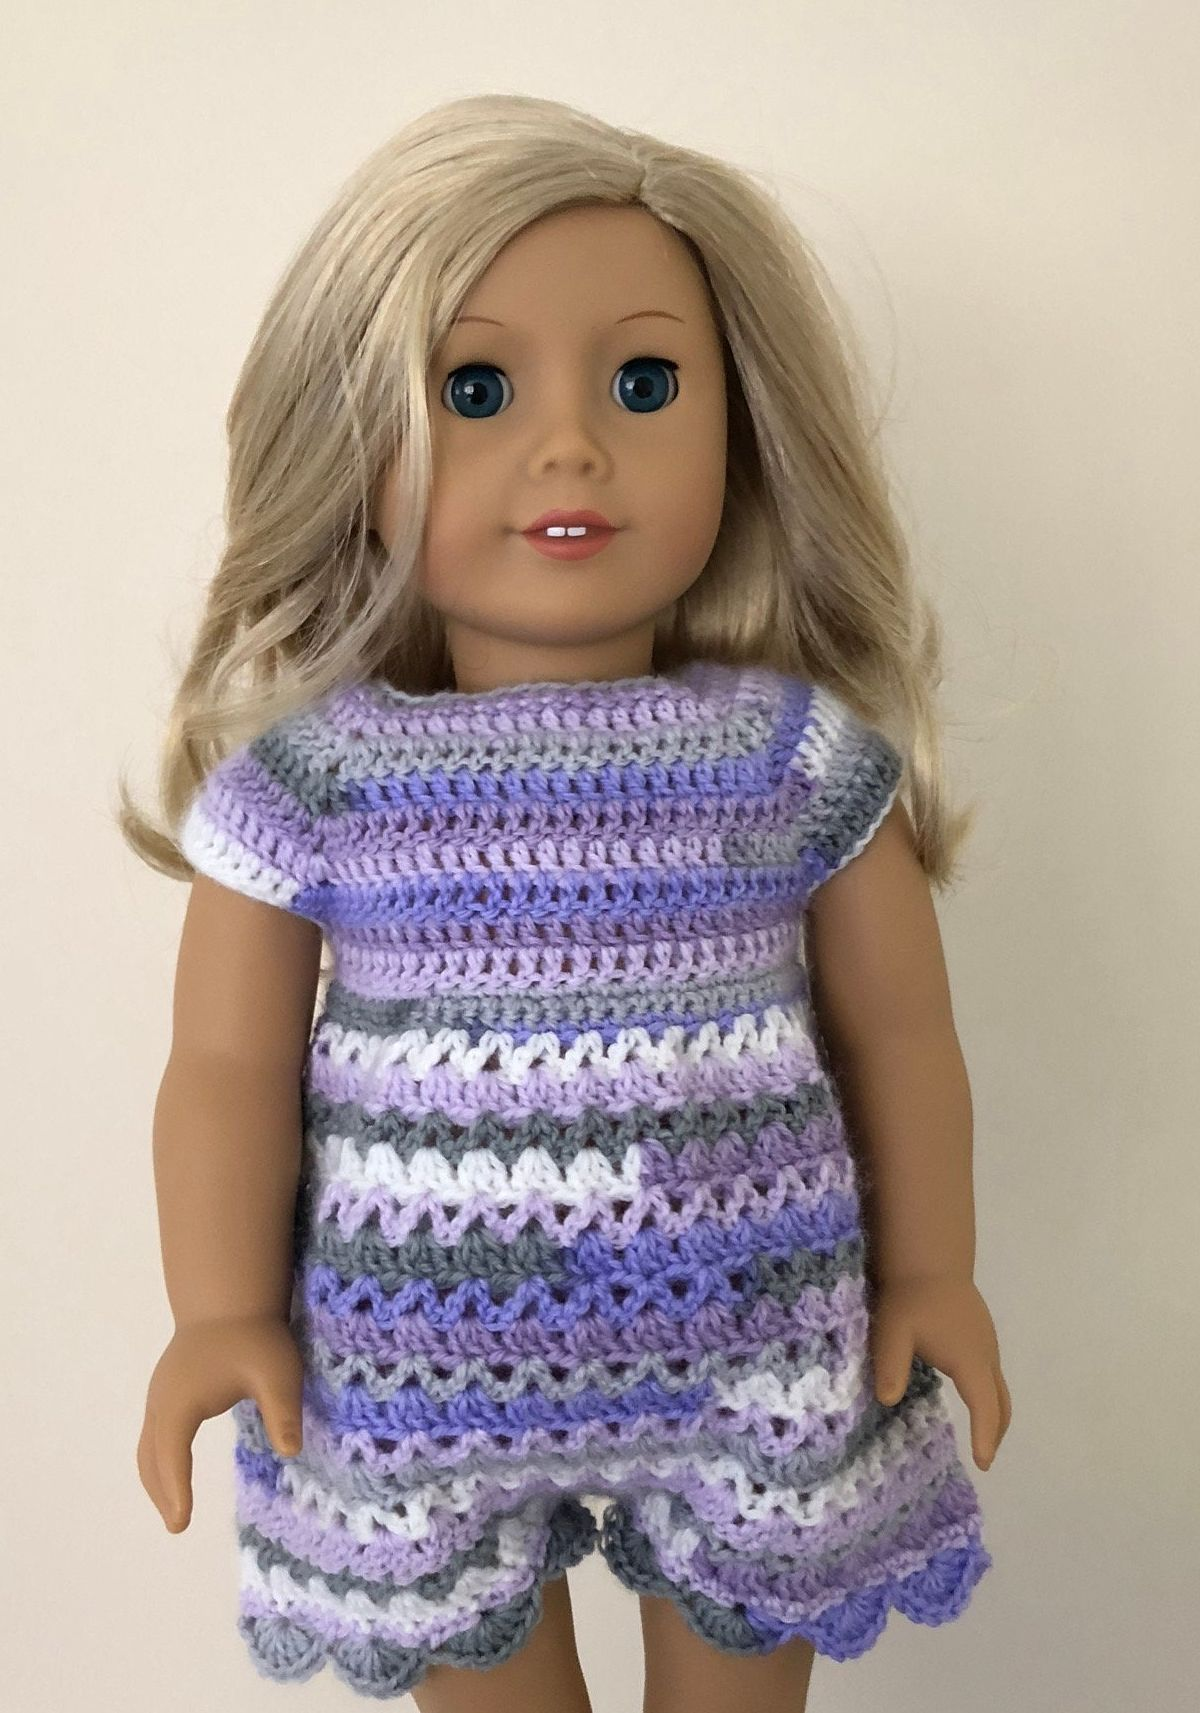 Purple multicoloured doll romper. 18 inch doll nightie. Hand crocheted dress for 18 doll such as American Girl. Doll outfit. Dolls clothes. #18inchdollsandclothes